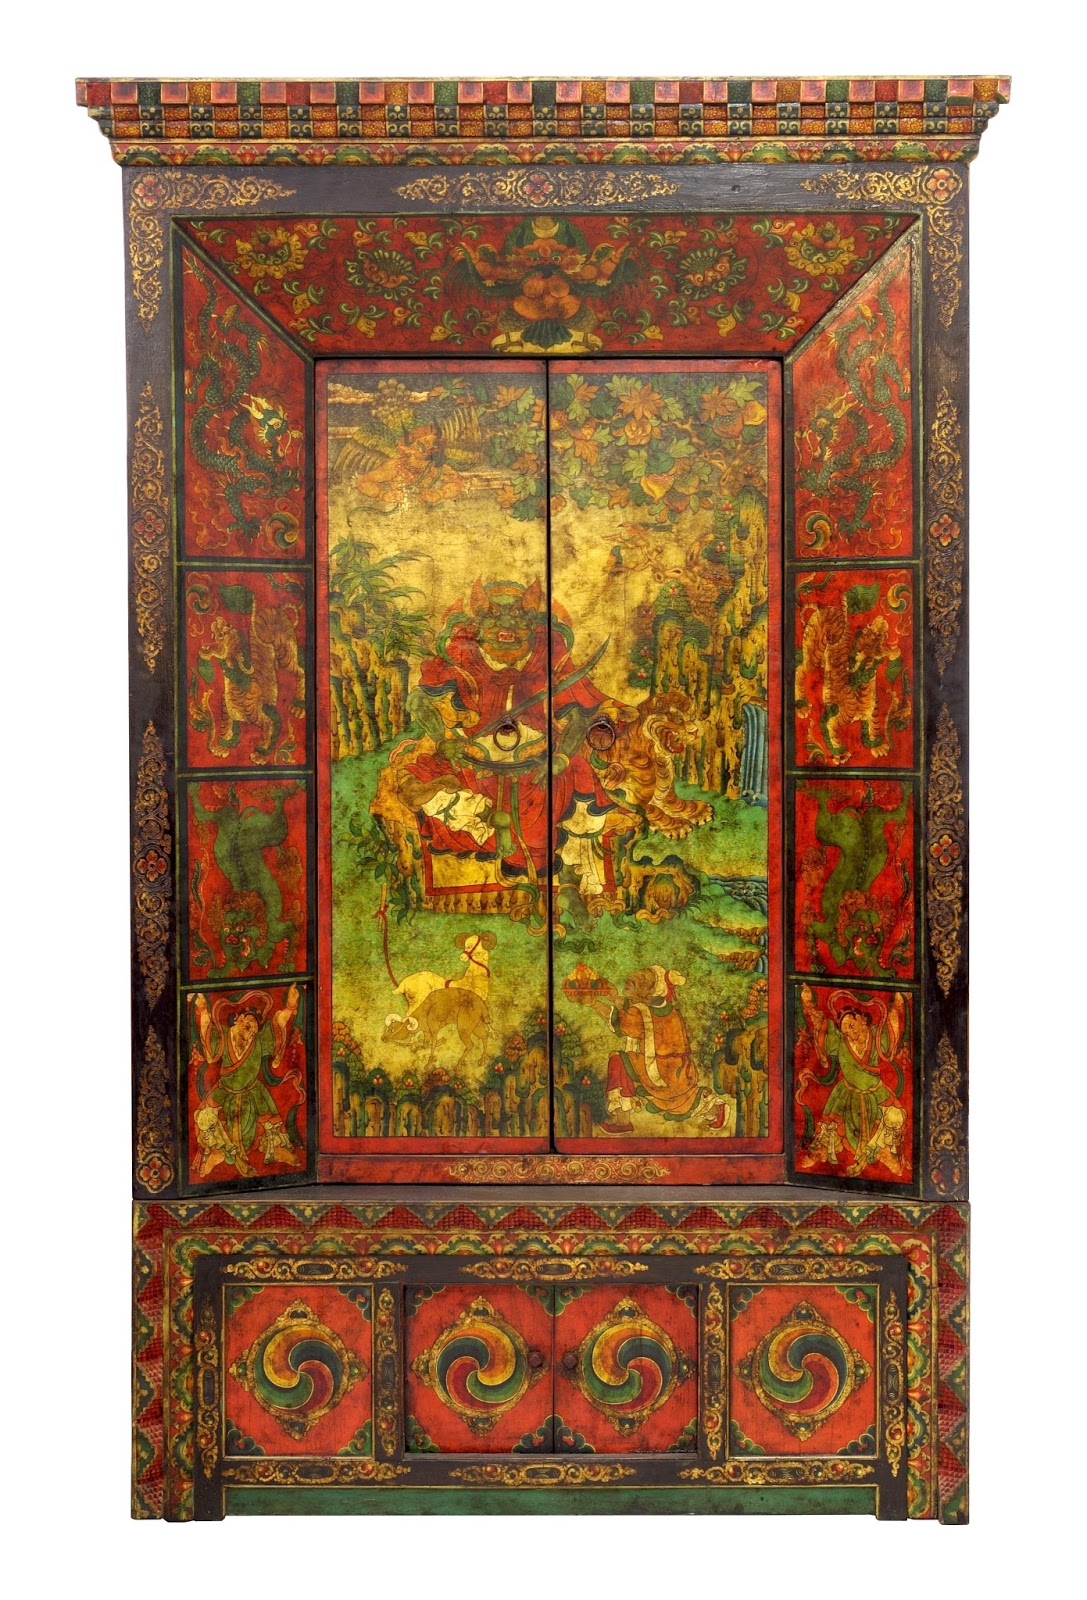 Musings On Chinese Furniture And Culture